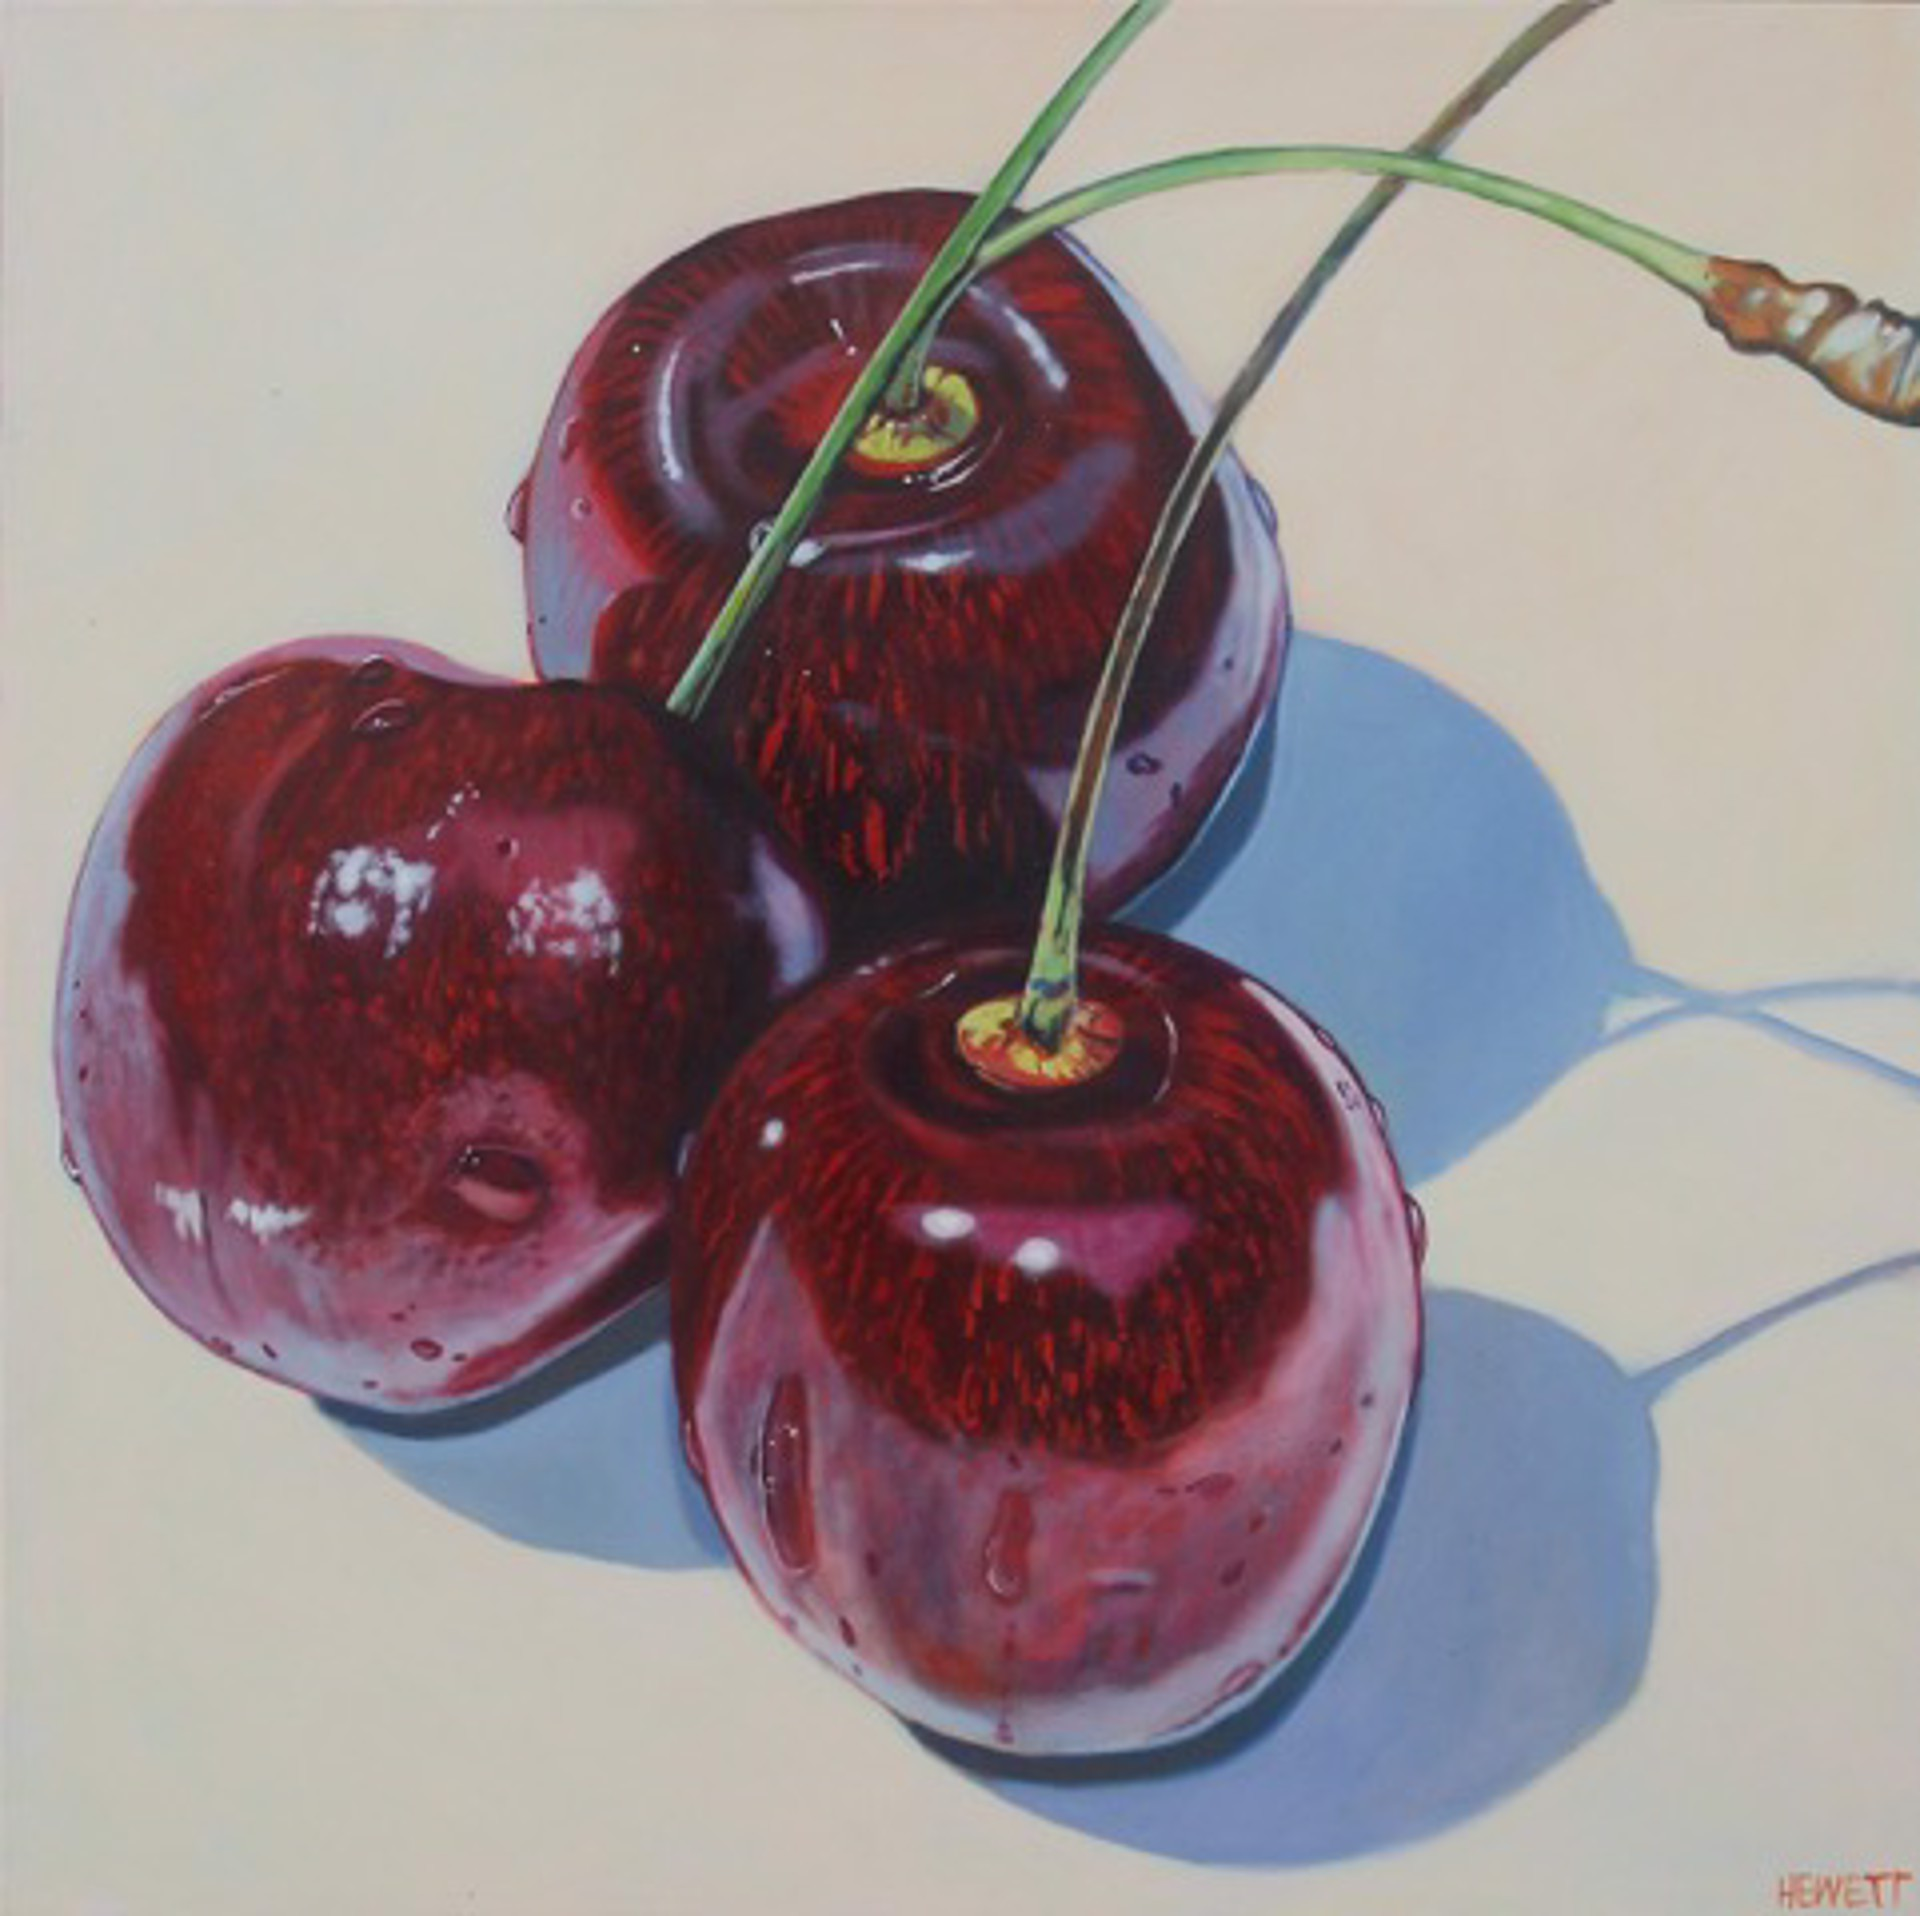 Cherries by Scott Hewett